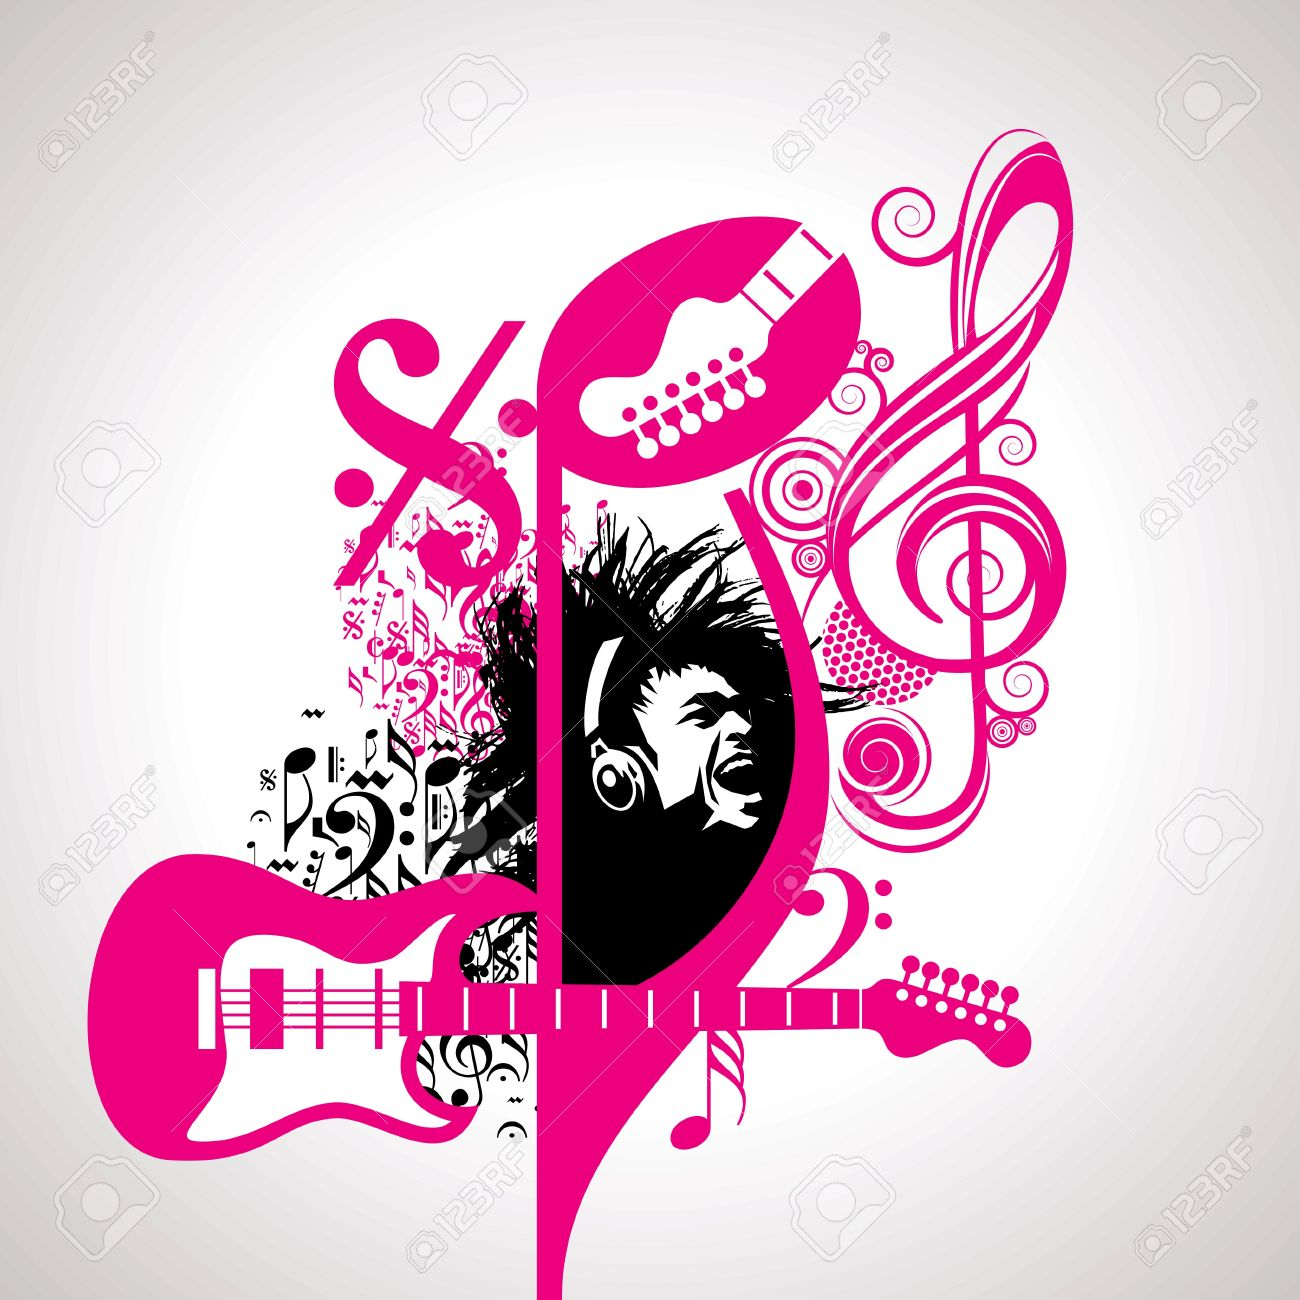 Abstract Musical Background For Music Event Design Royalty Free